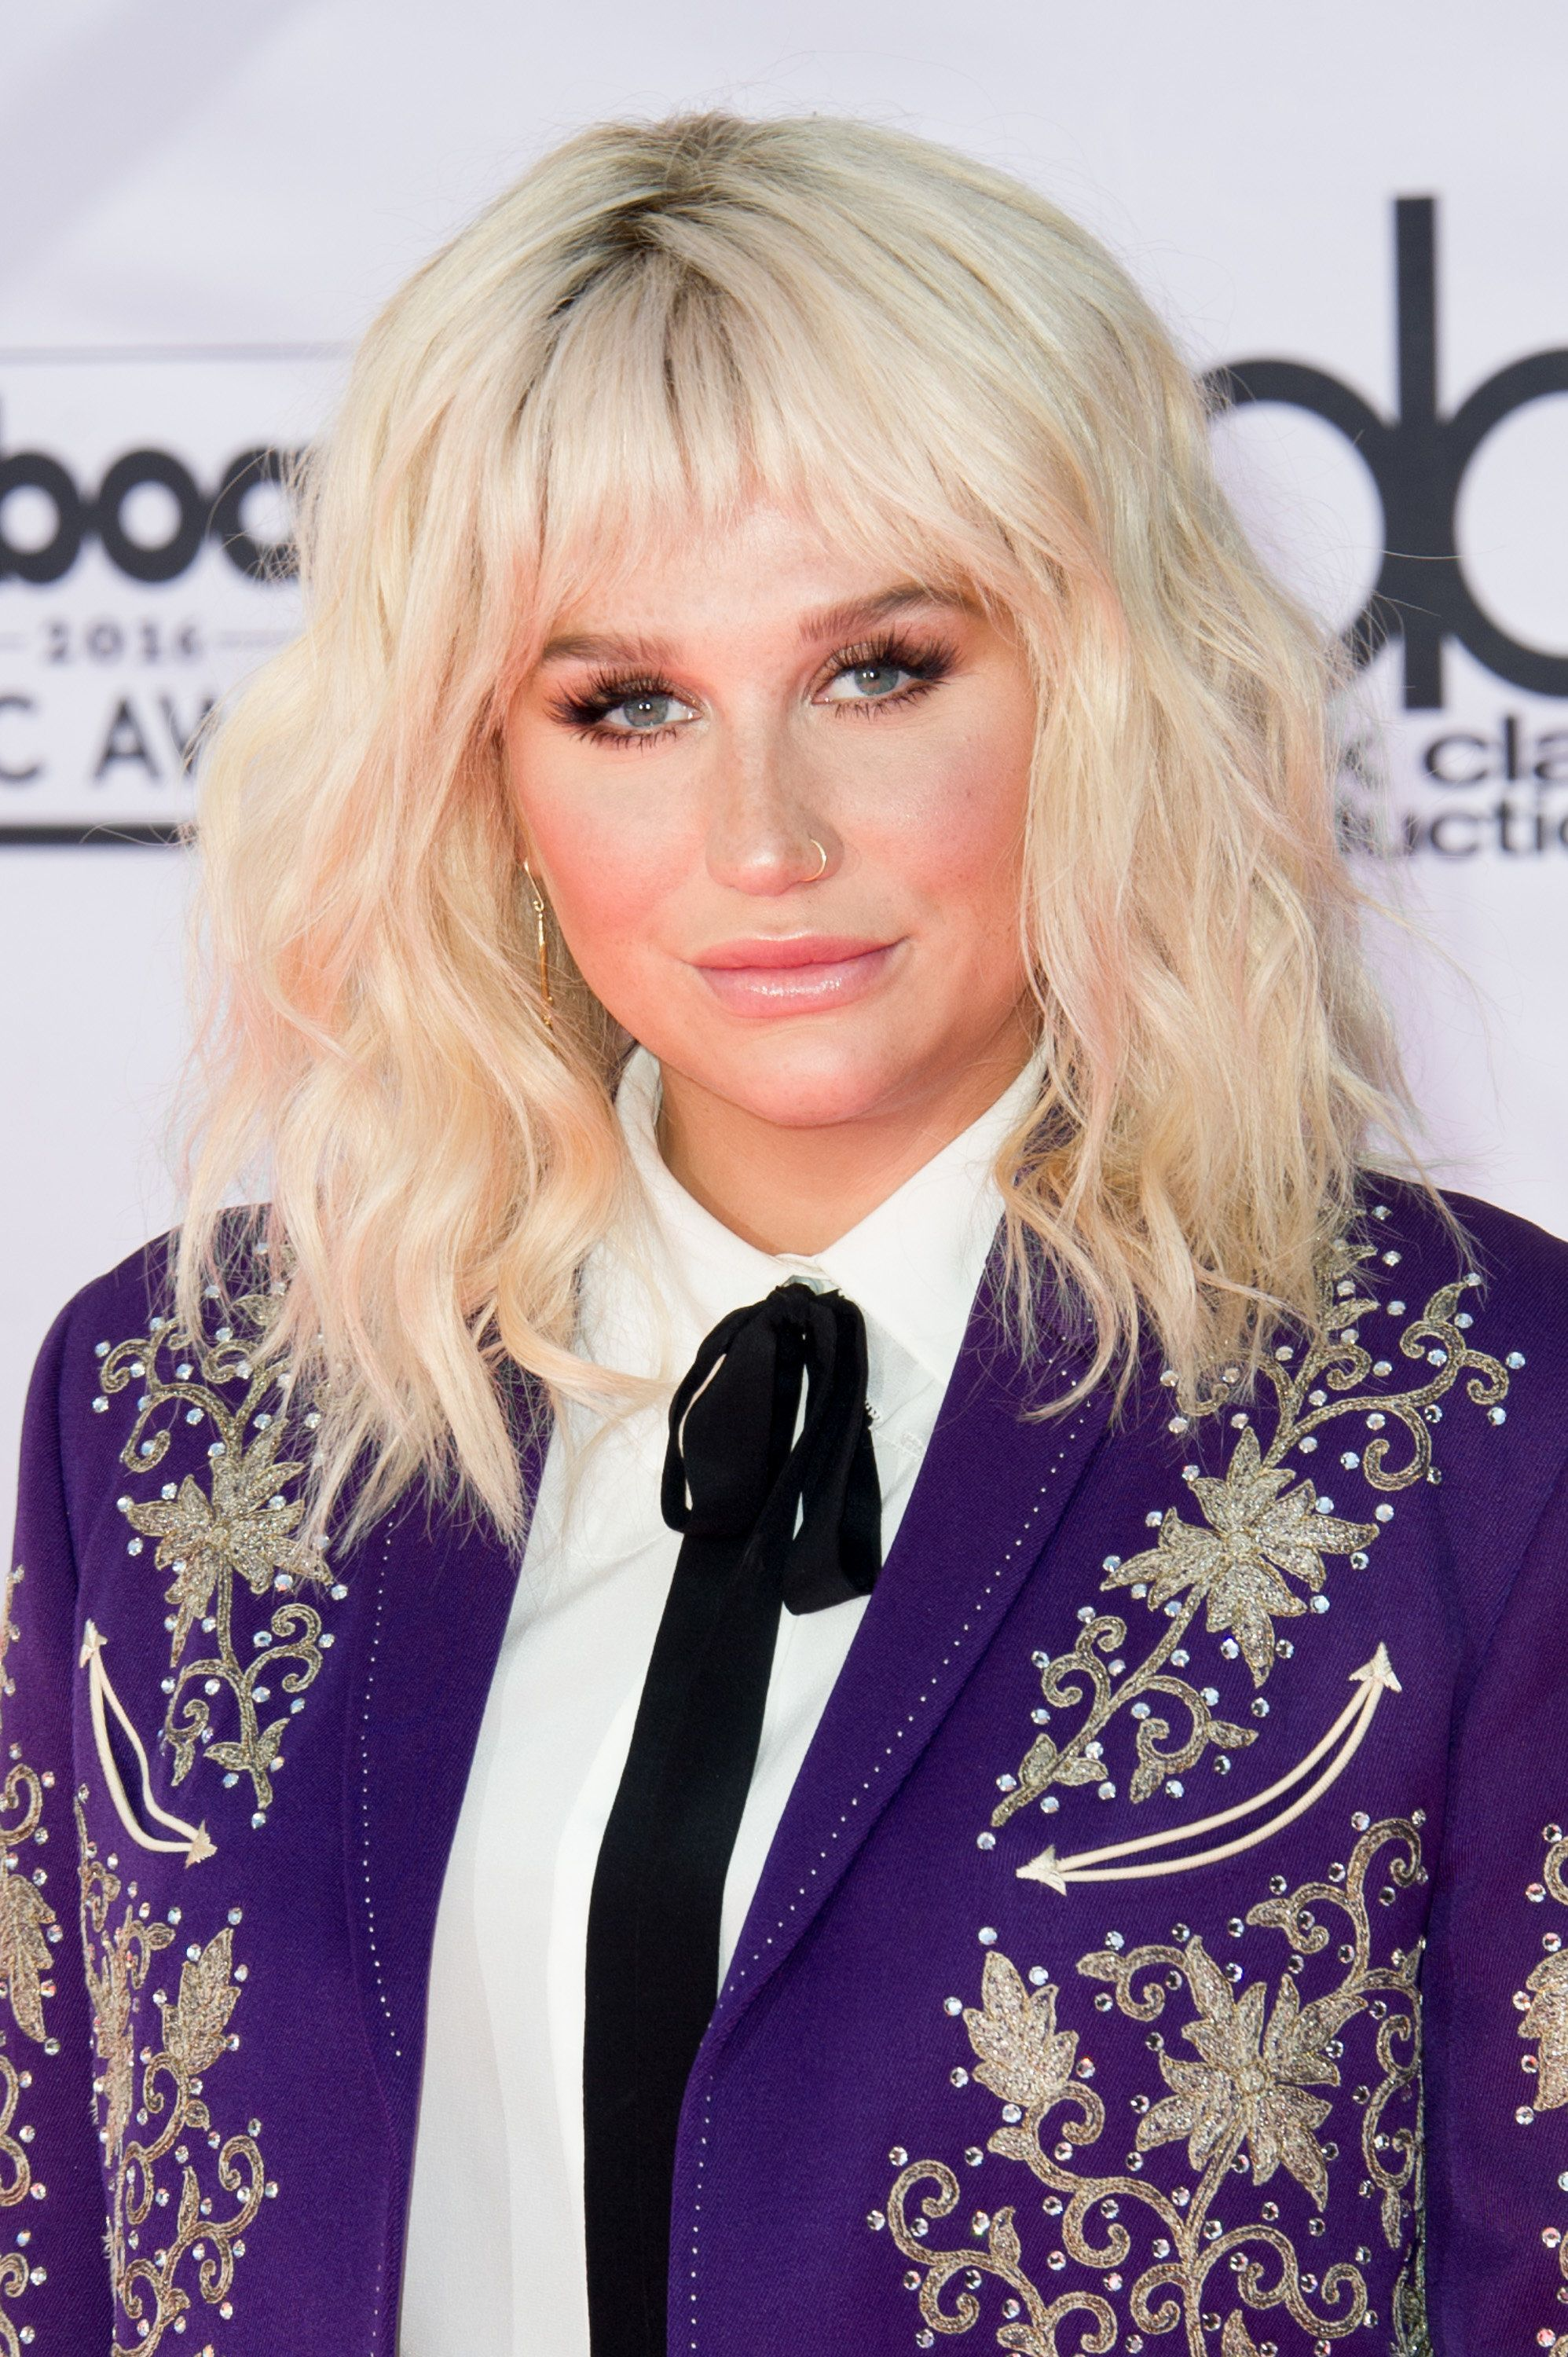 Kesha revealed she tried to kill herself when faced with the pressure to stay thin.